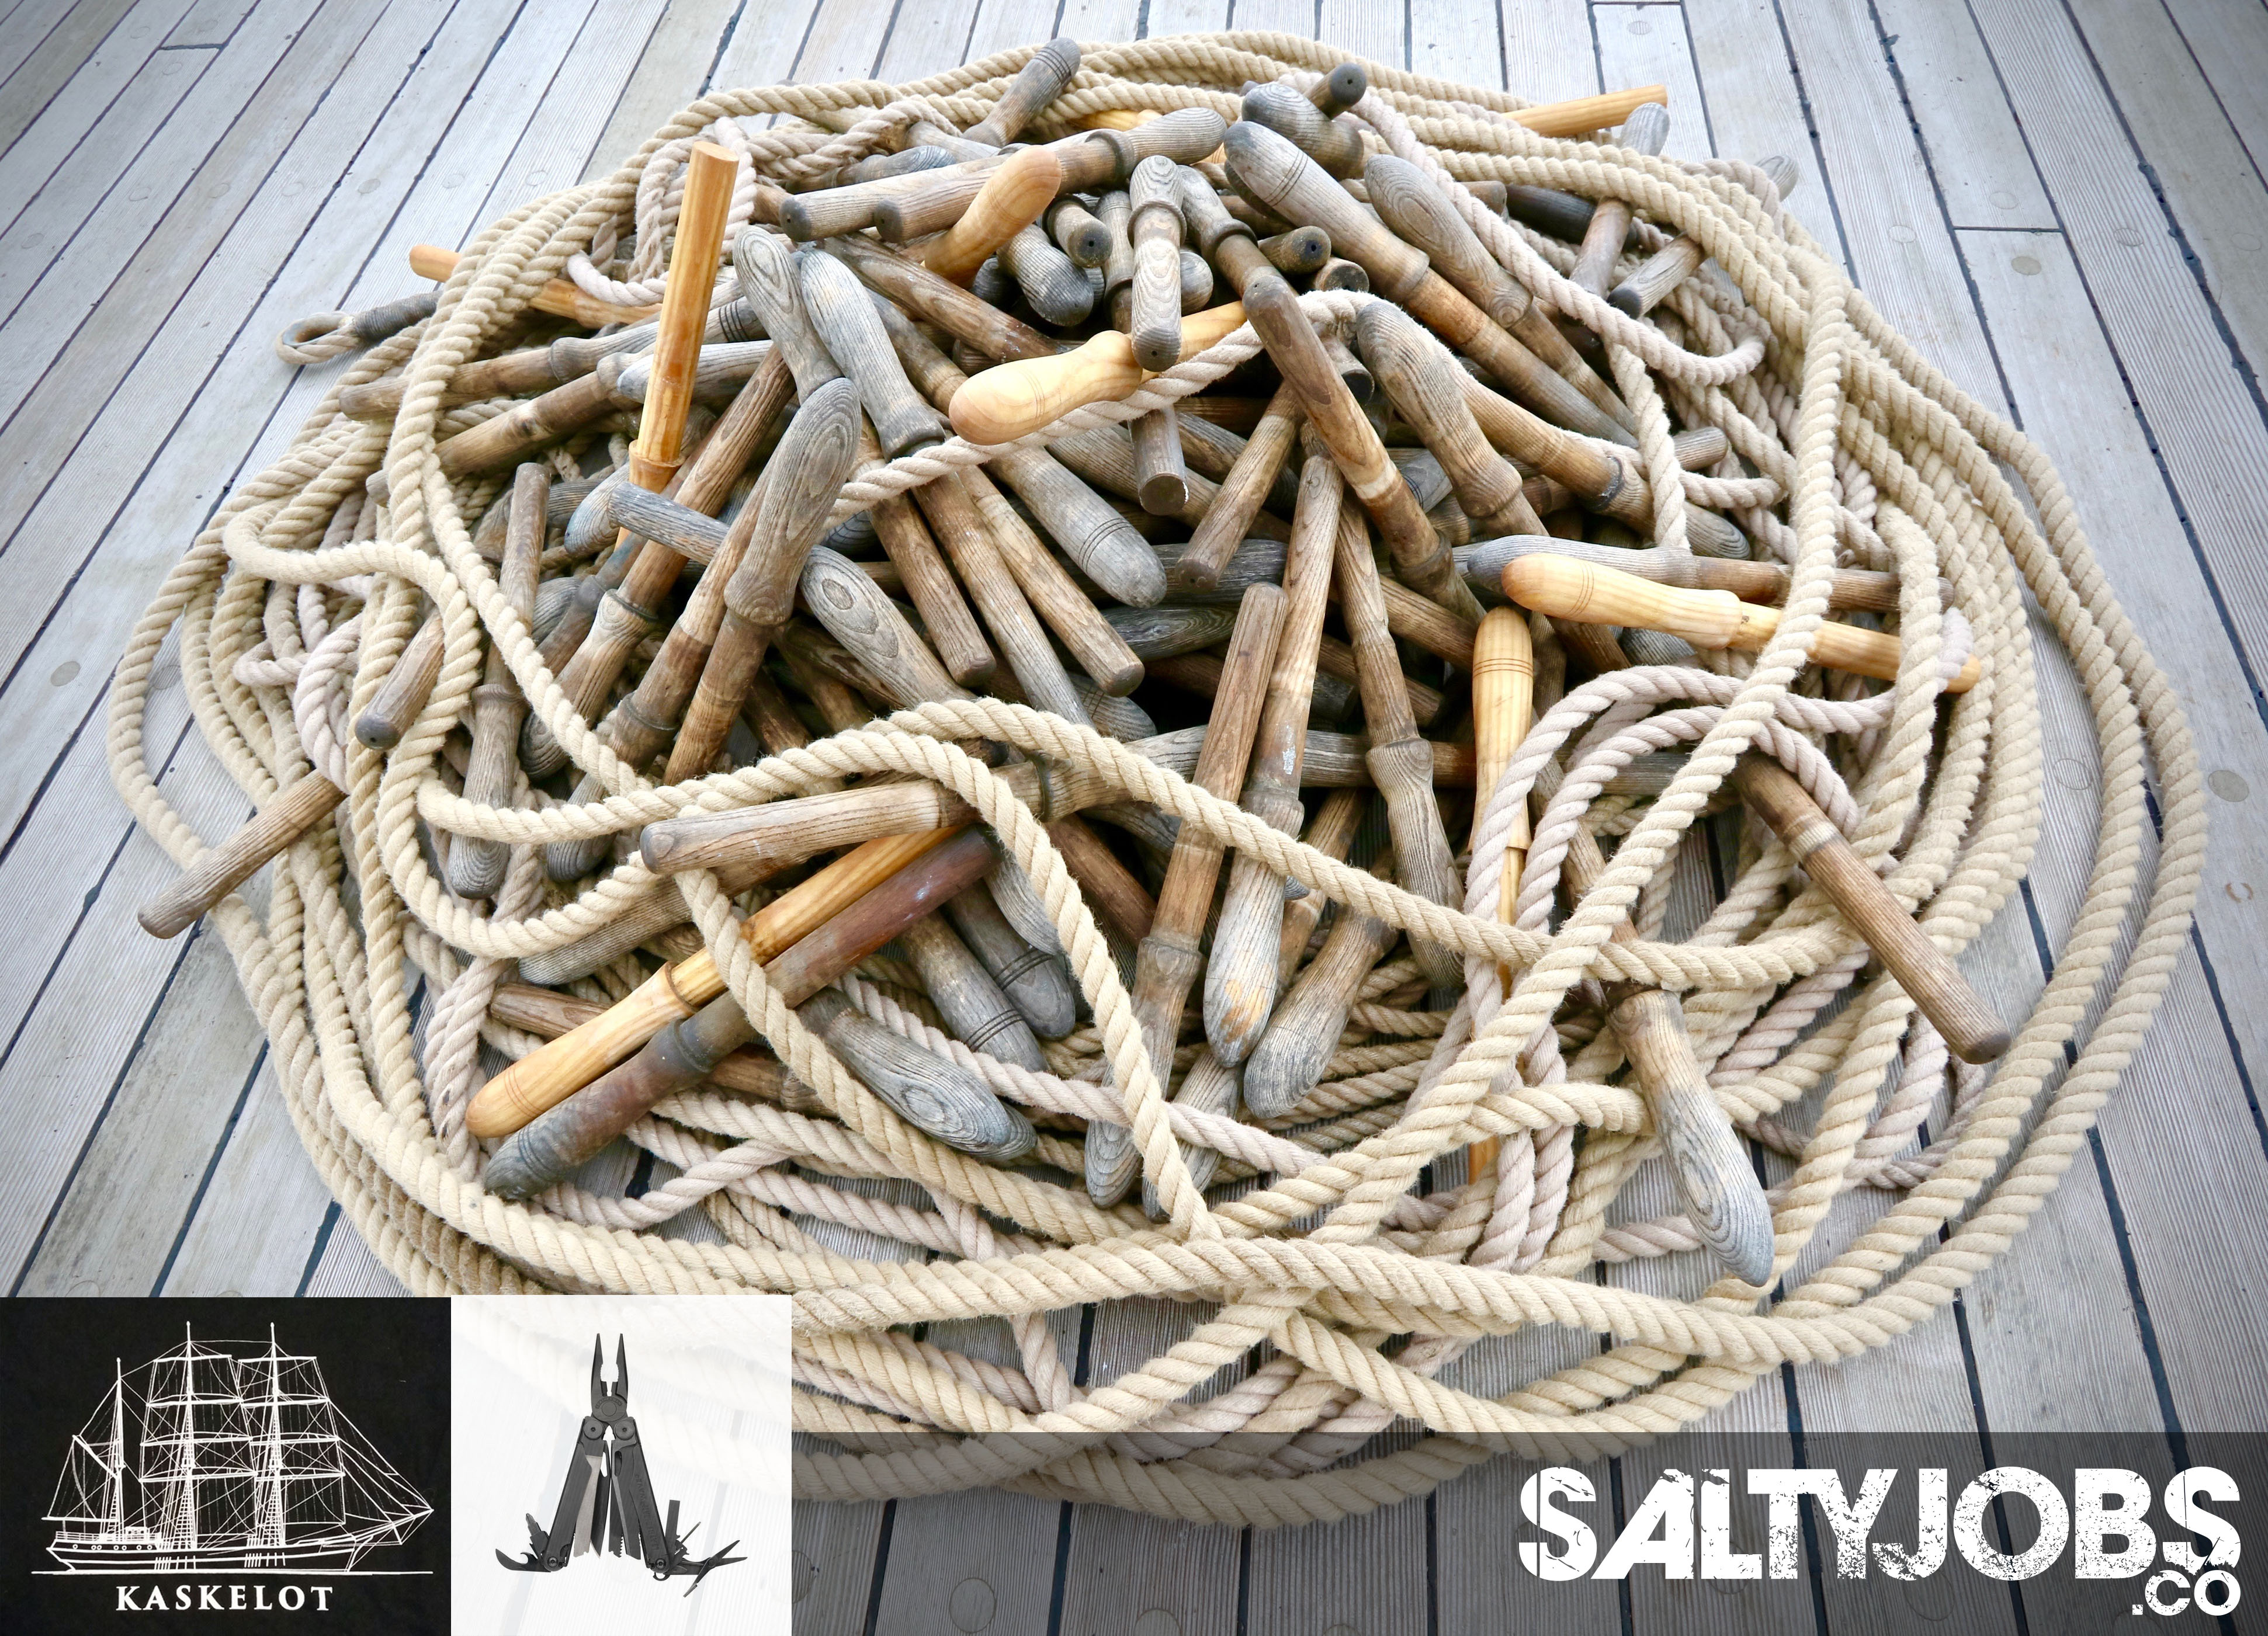 saltyjobs-competition-belaying-pins-leatherman